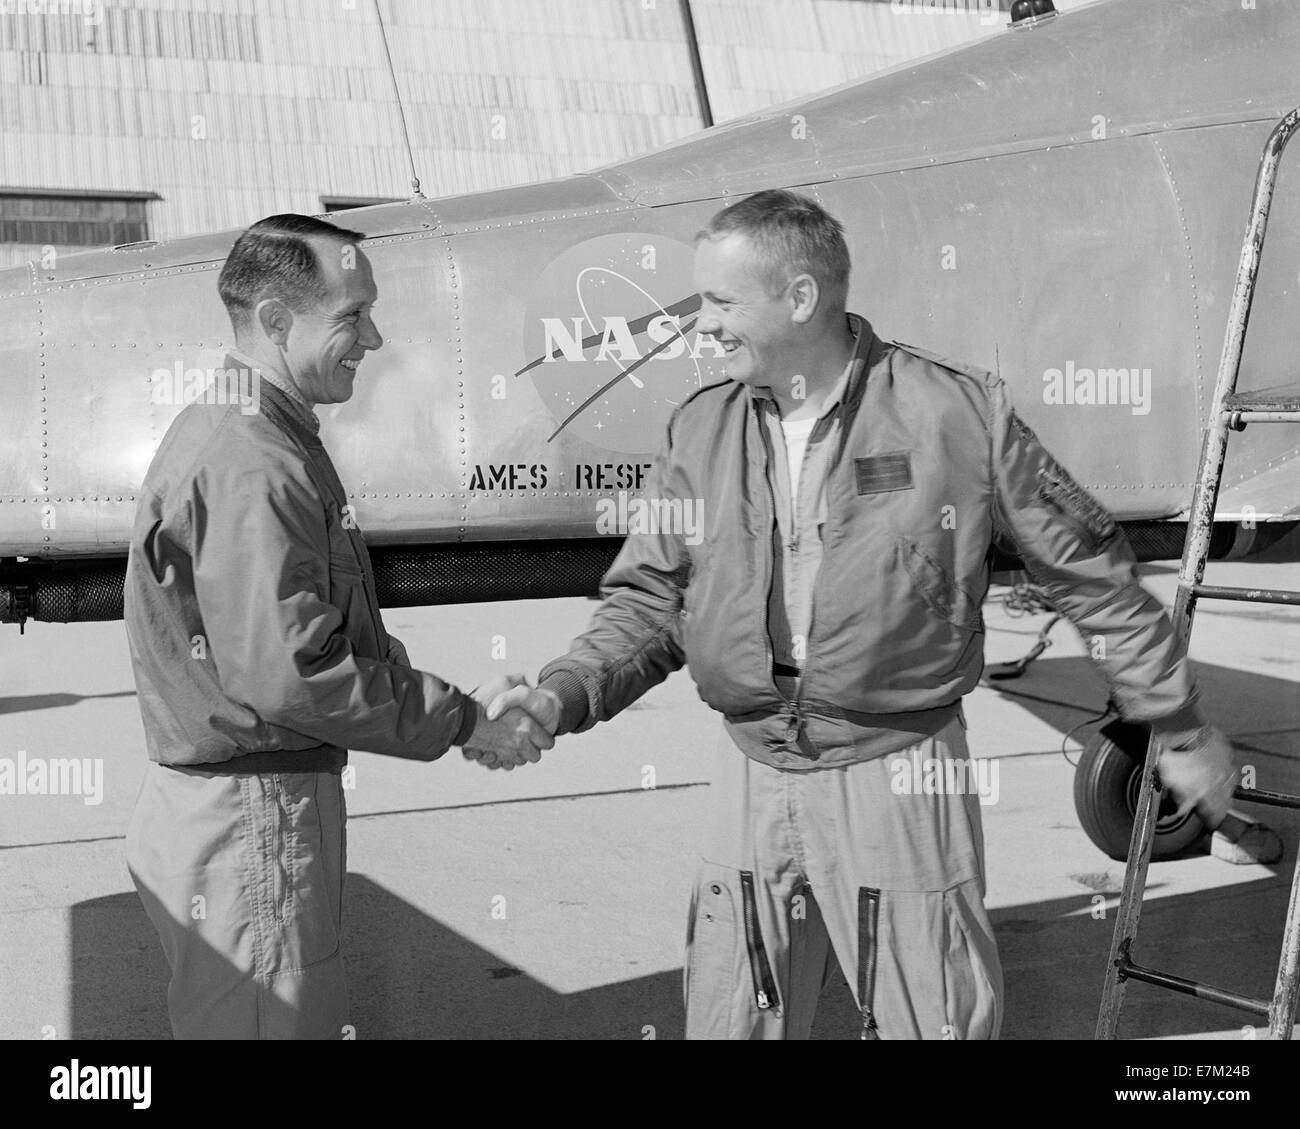 Fred Drinkwater congratulating Neil Armstrong Stock Photo